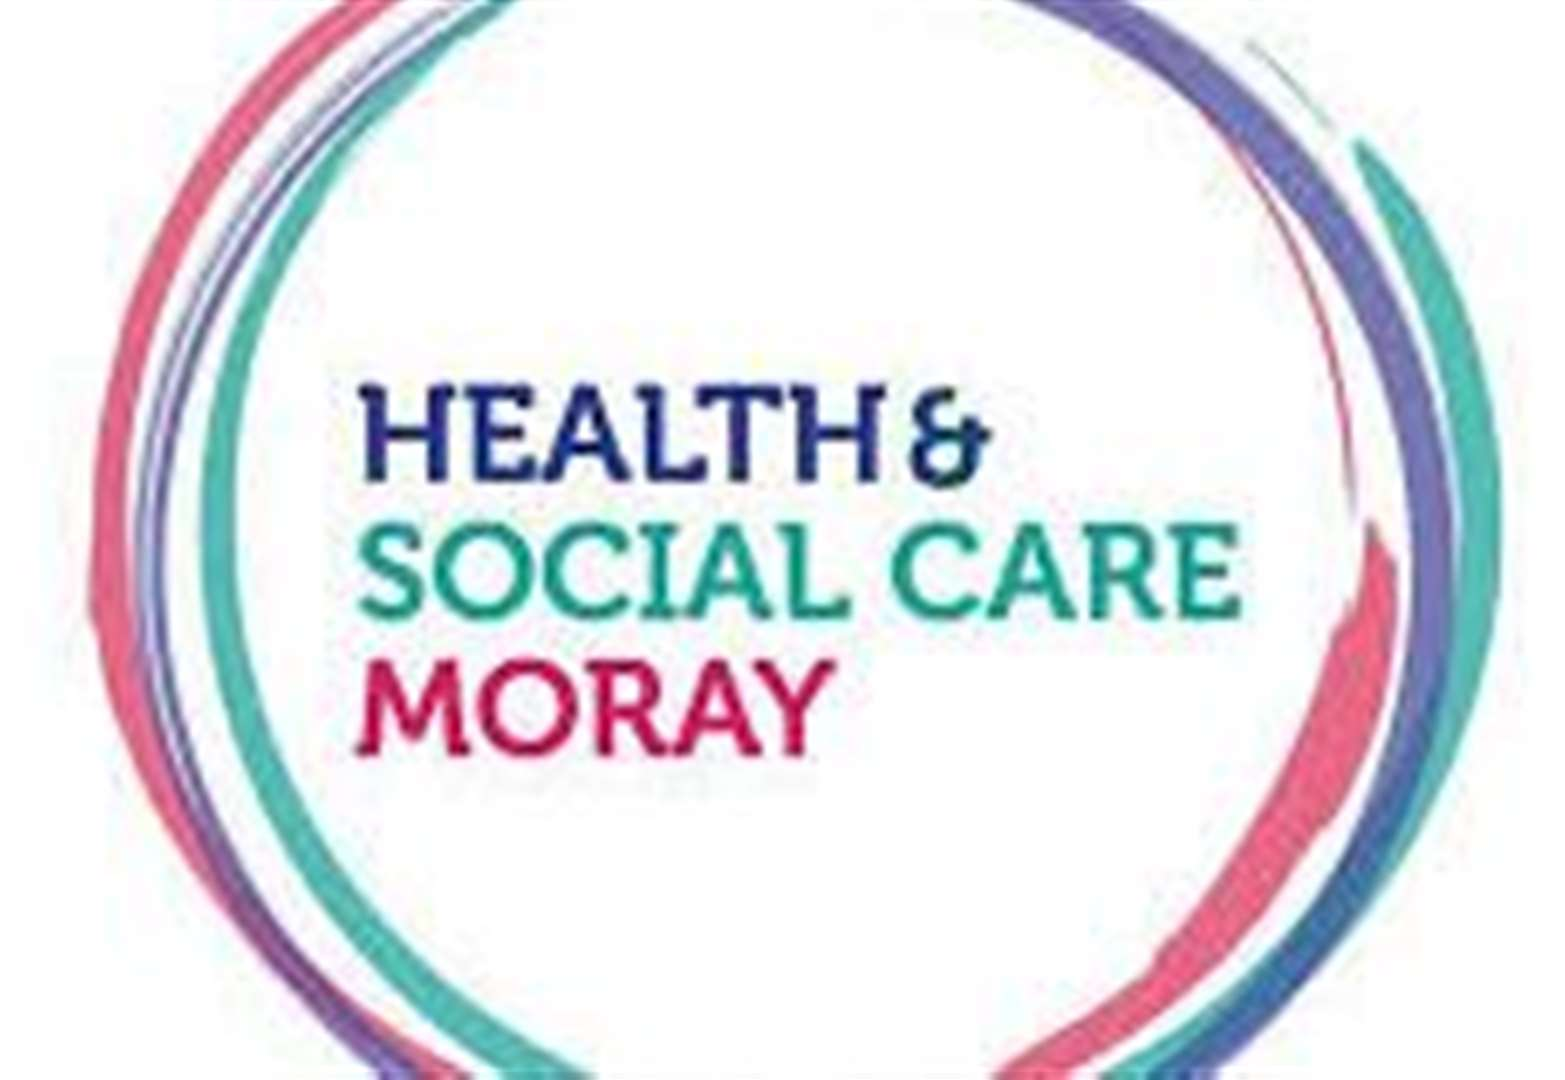 Views sought on future of care delivery in Moray